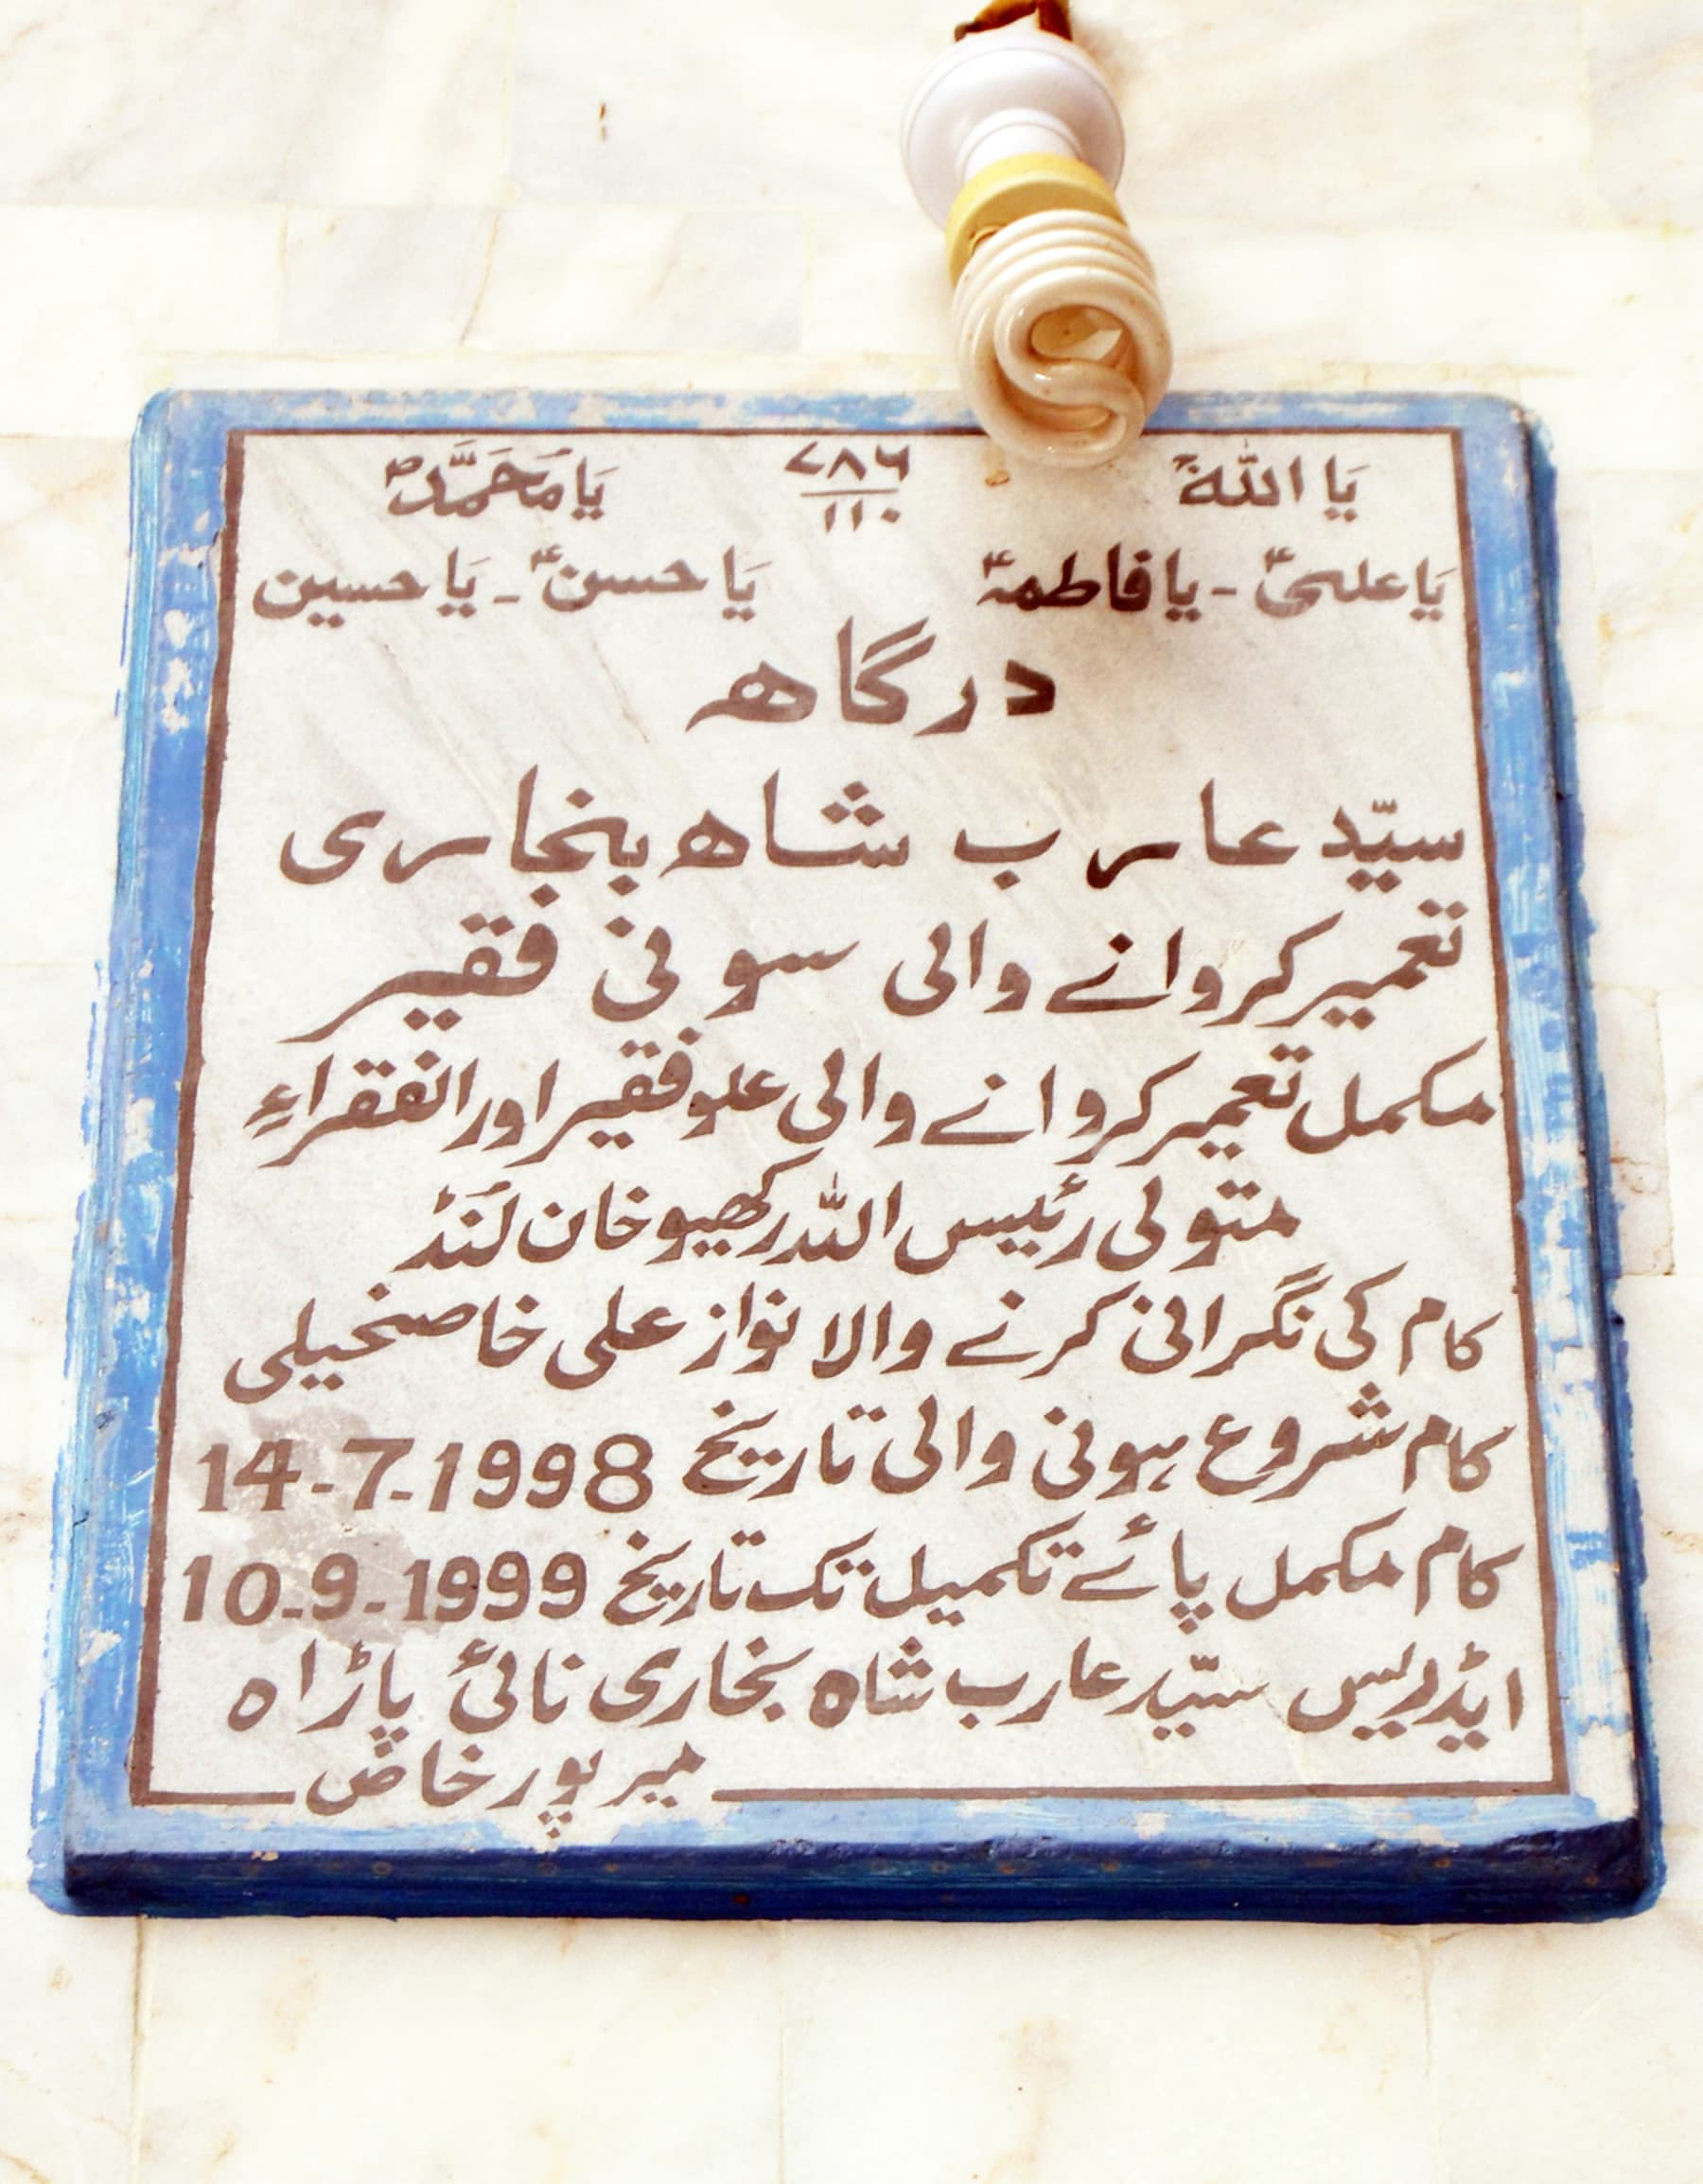 A plaque bearing the reconstruction of the shrine.